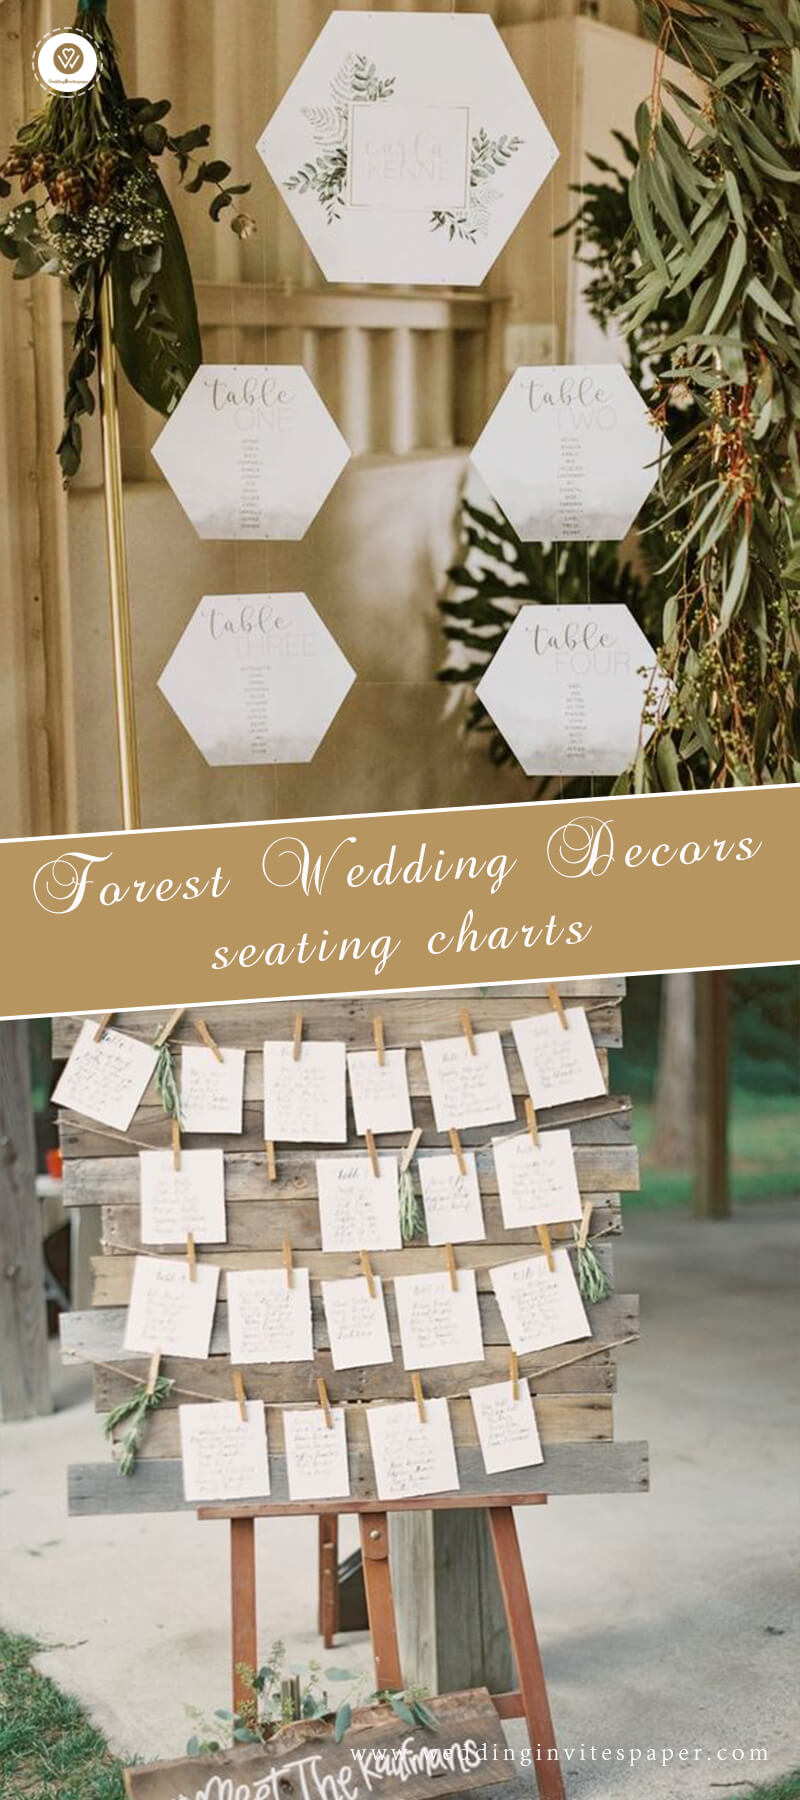 Forest Wedding Decors seating charts.jpg